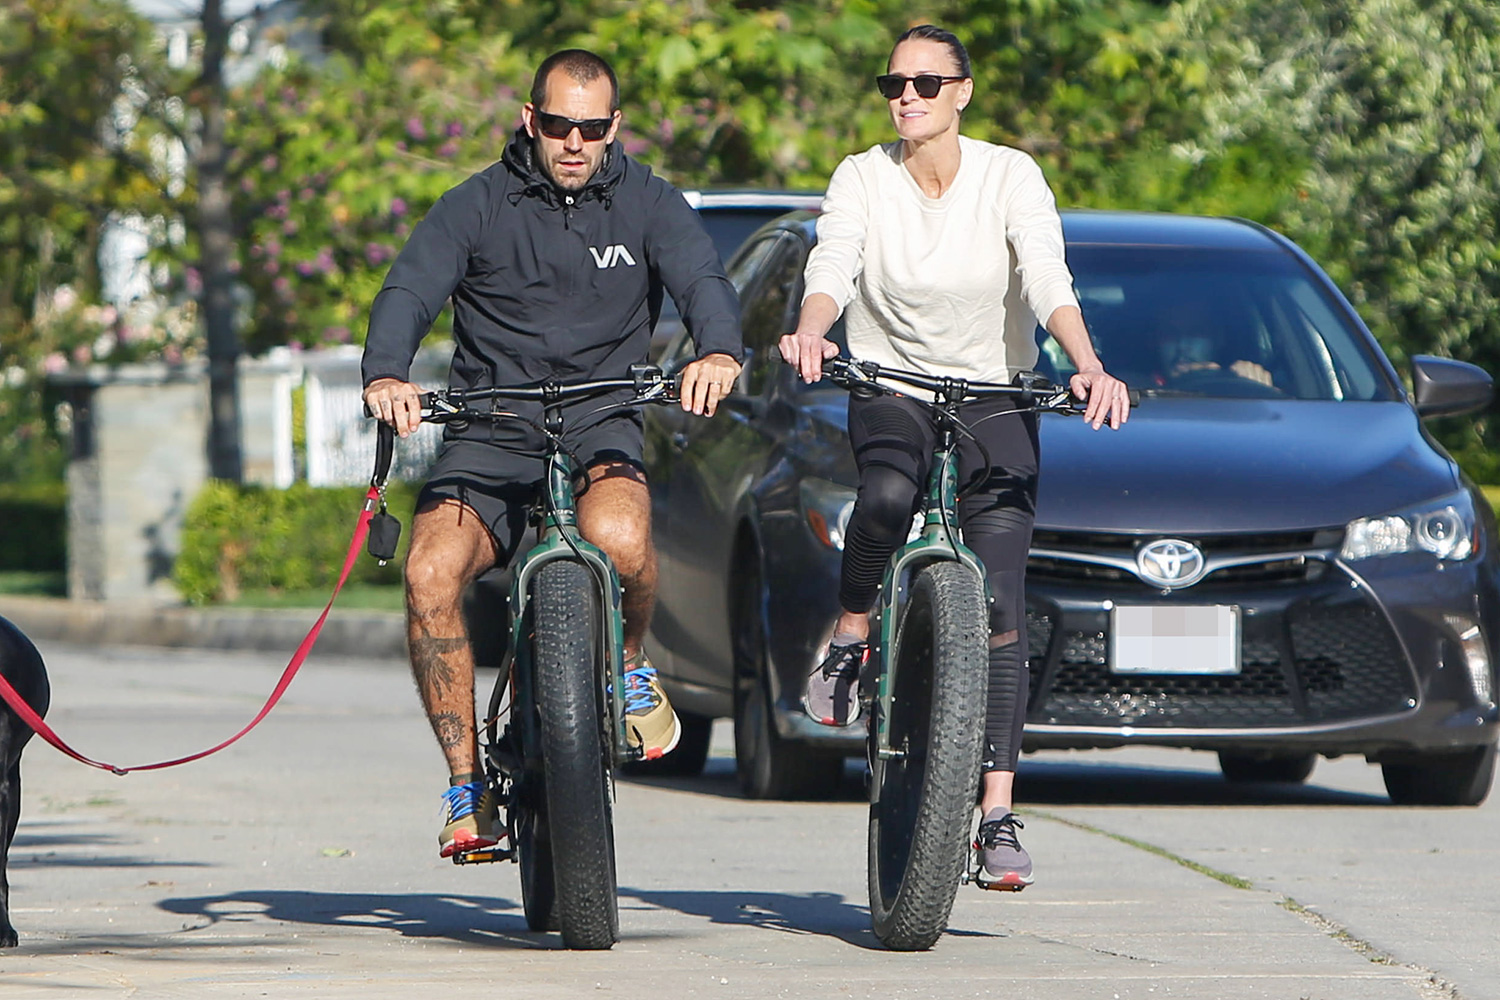 Robin Wright and Clement Giraudet are seen riding bicycles with their dog walking alongside on April 21, 2020 in Los Angeles, California